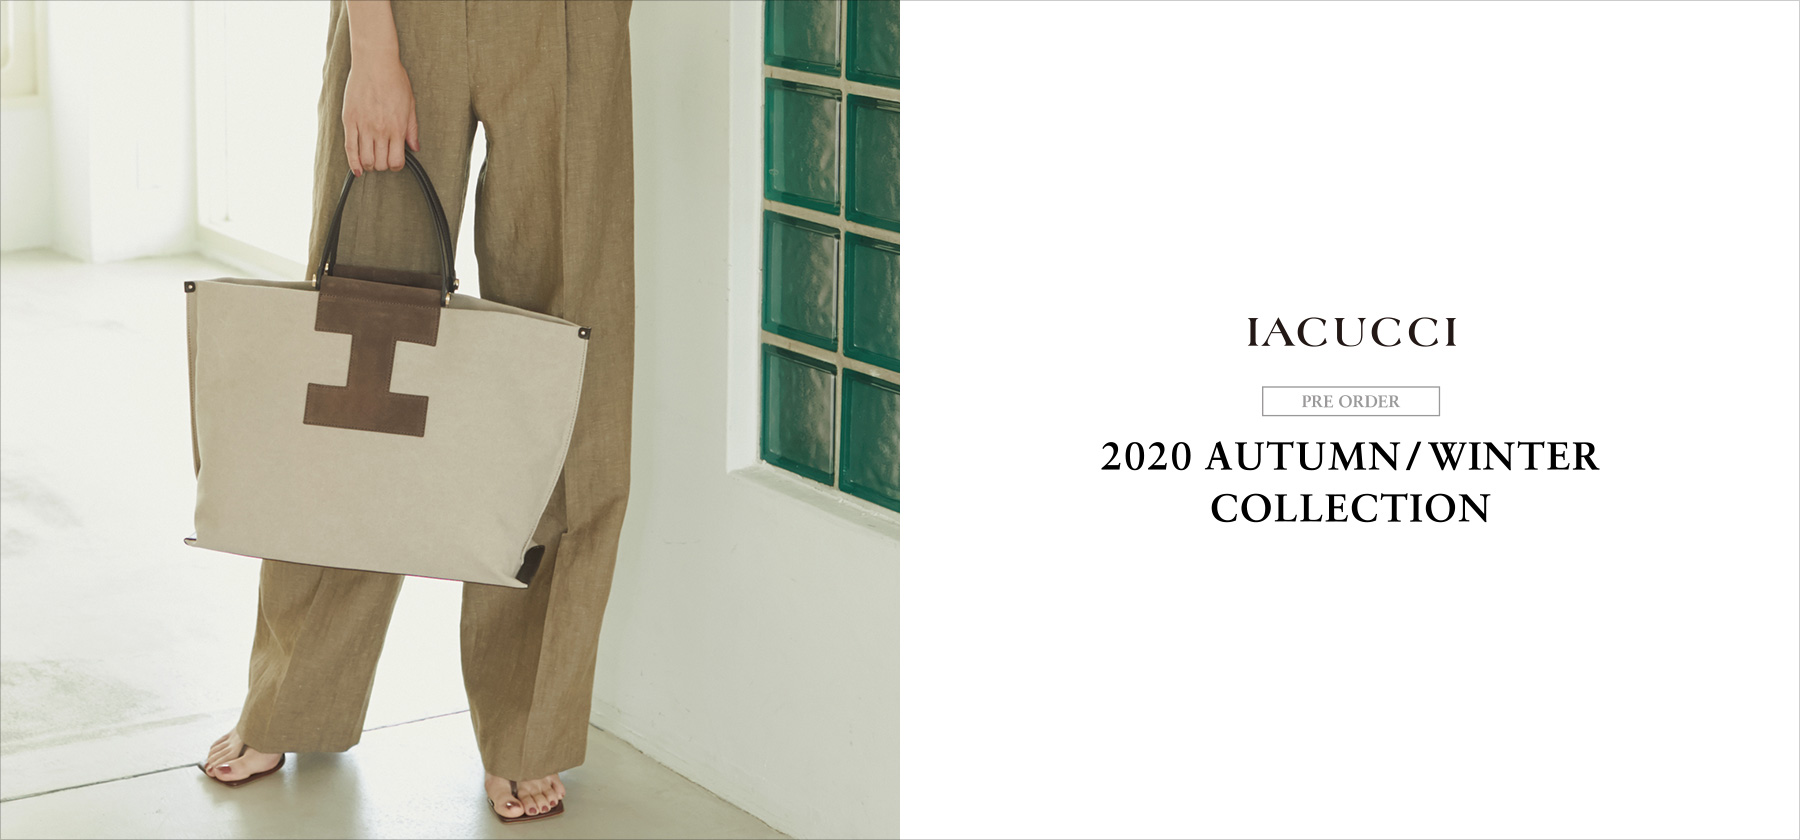 2020 AUTUM/WINTER COLLECTION